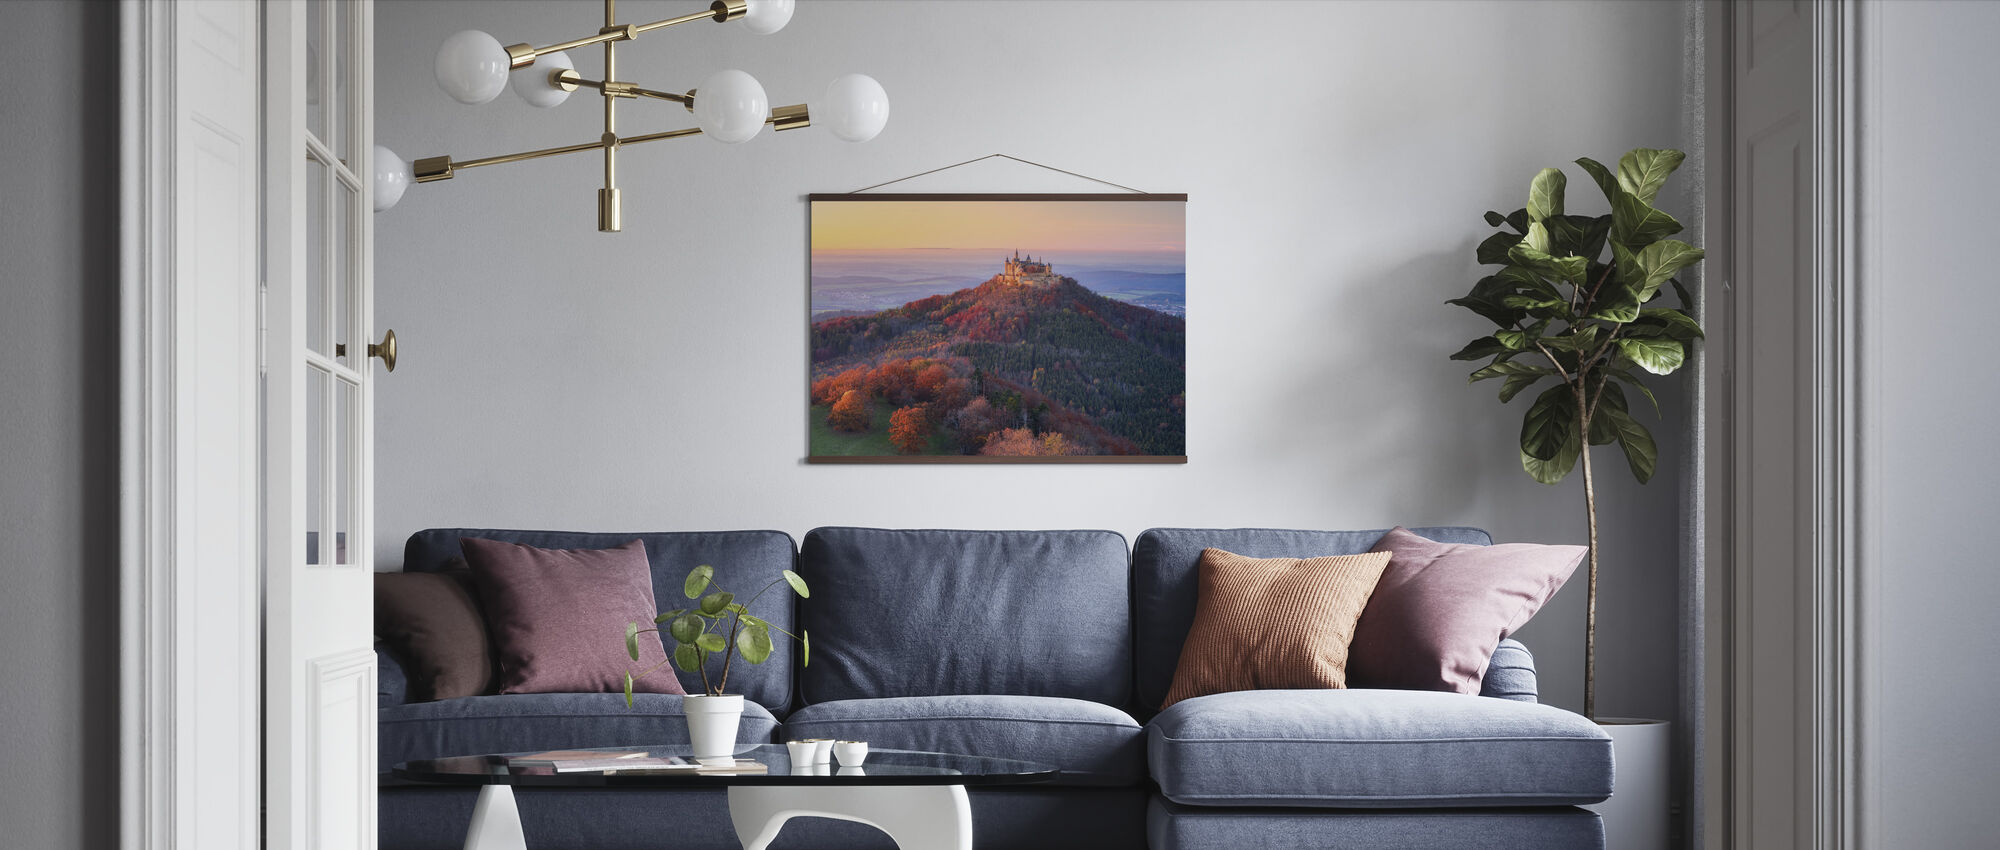 Golden Autumn Evening - Poster - Living Room